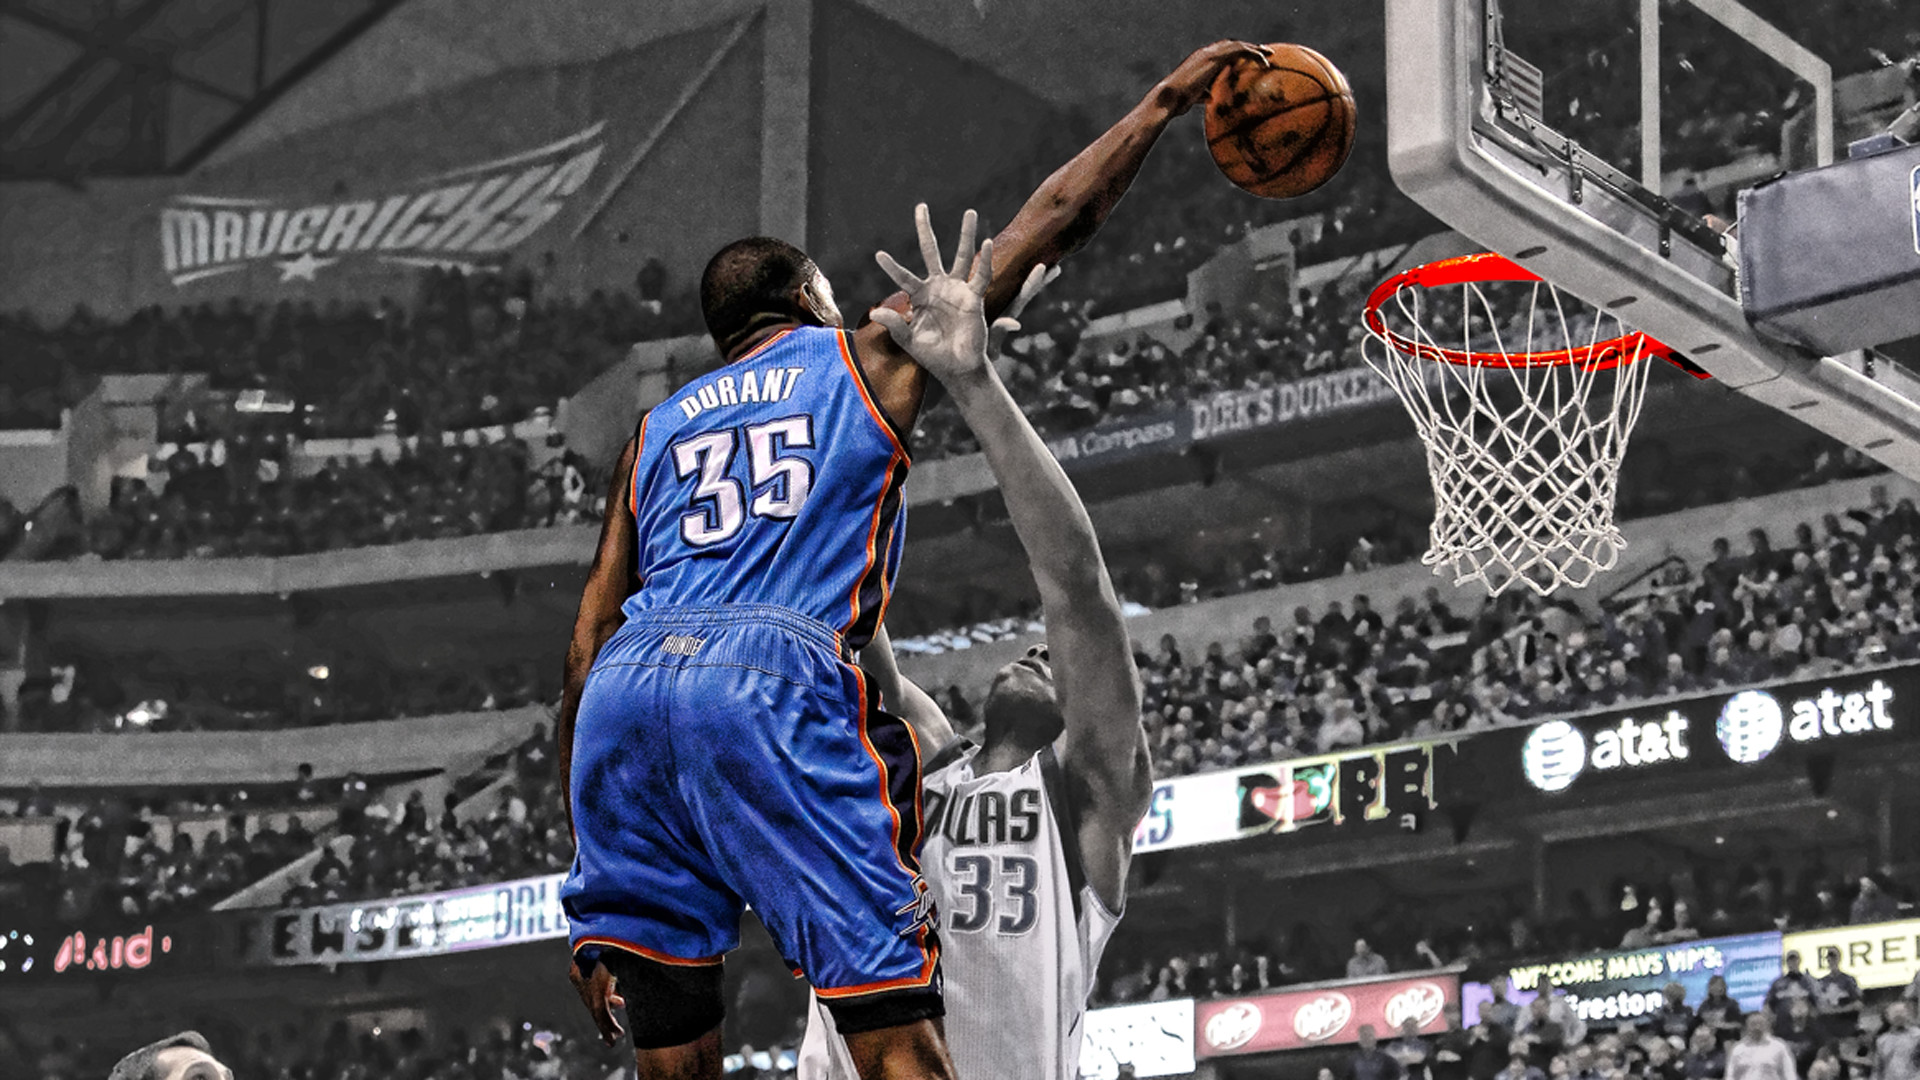 best loved a4c94 8ad22 1920x1080 Hd kevin durant wallpapers